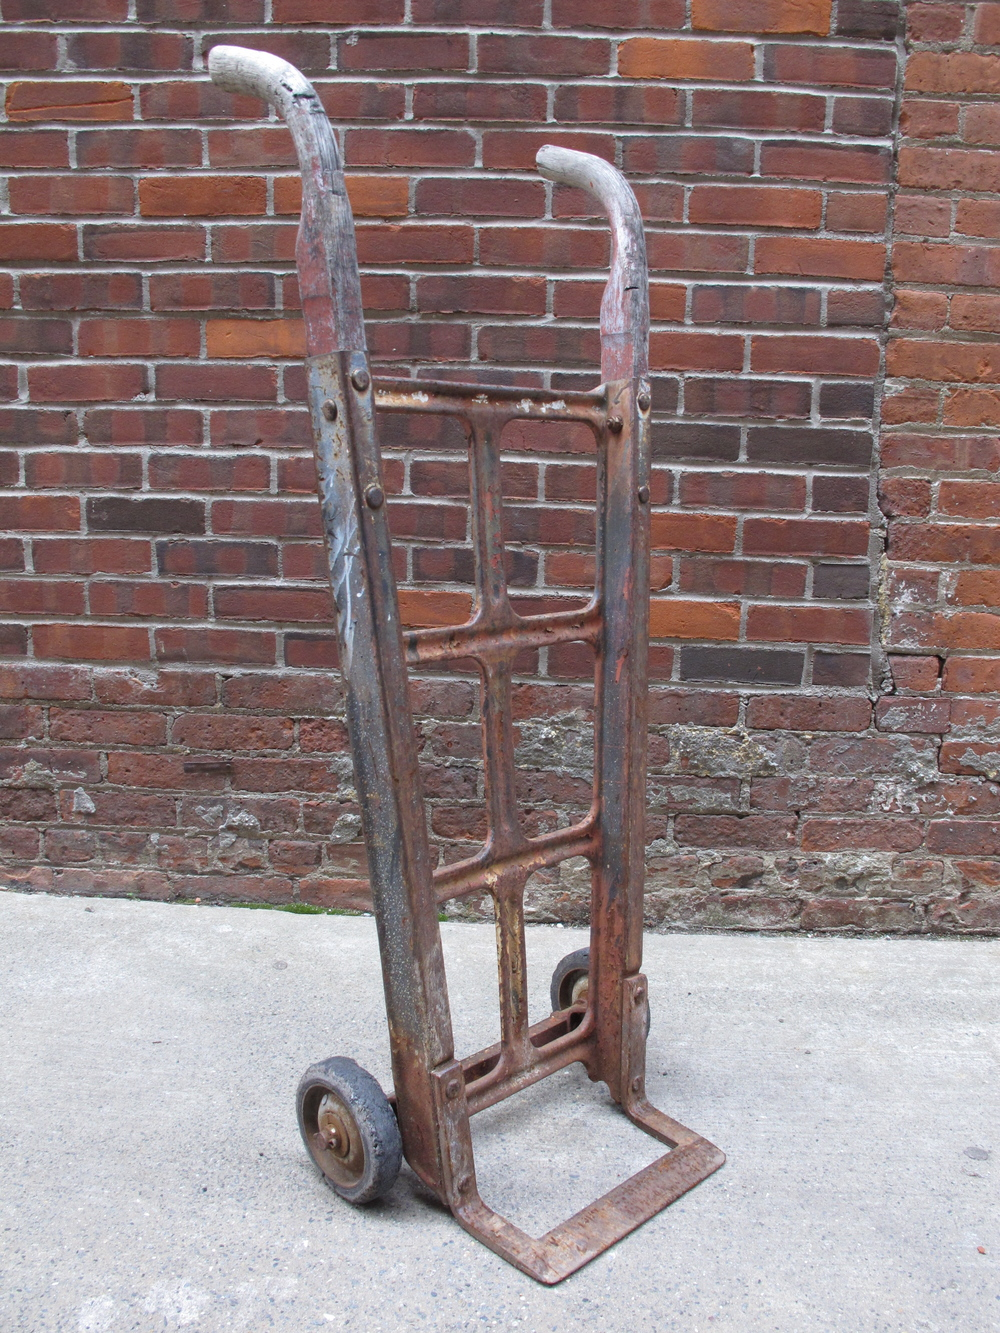 Wood and red rusted metal 2-wheeled dolly